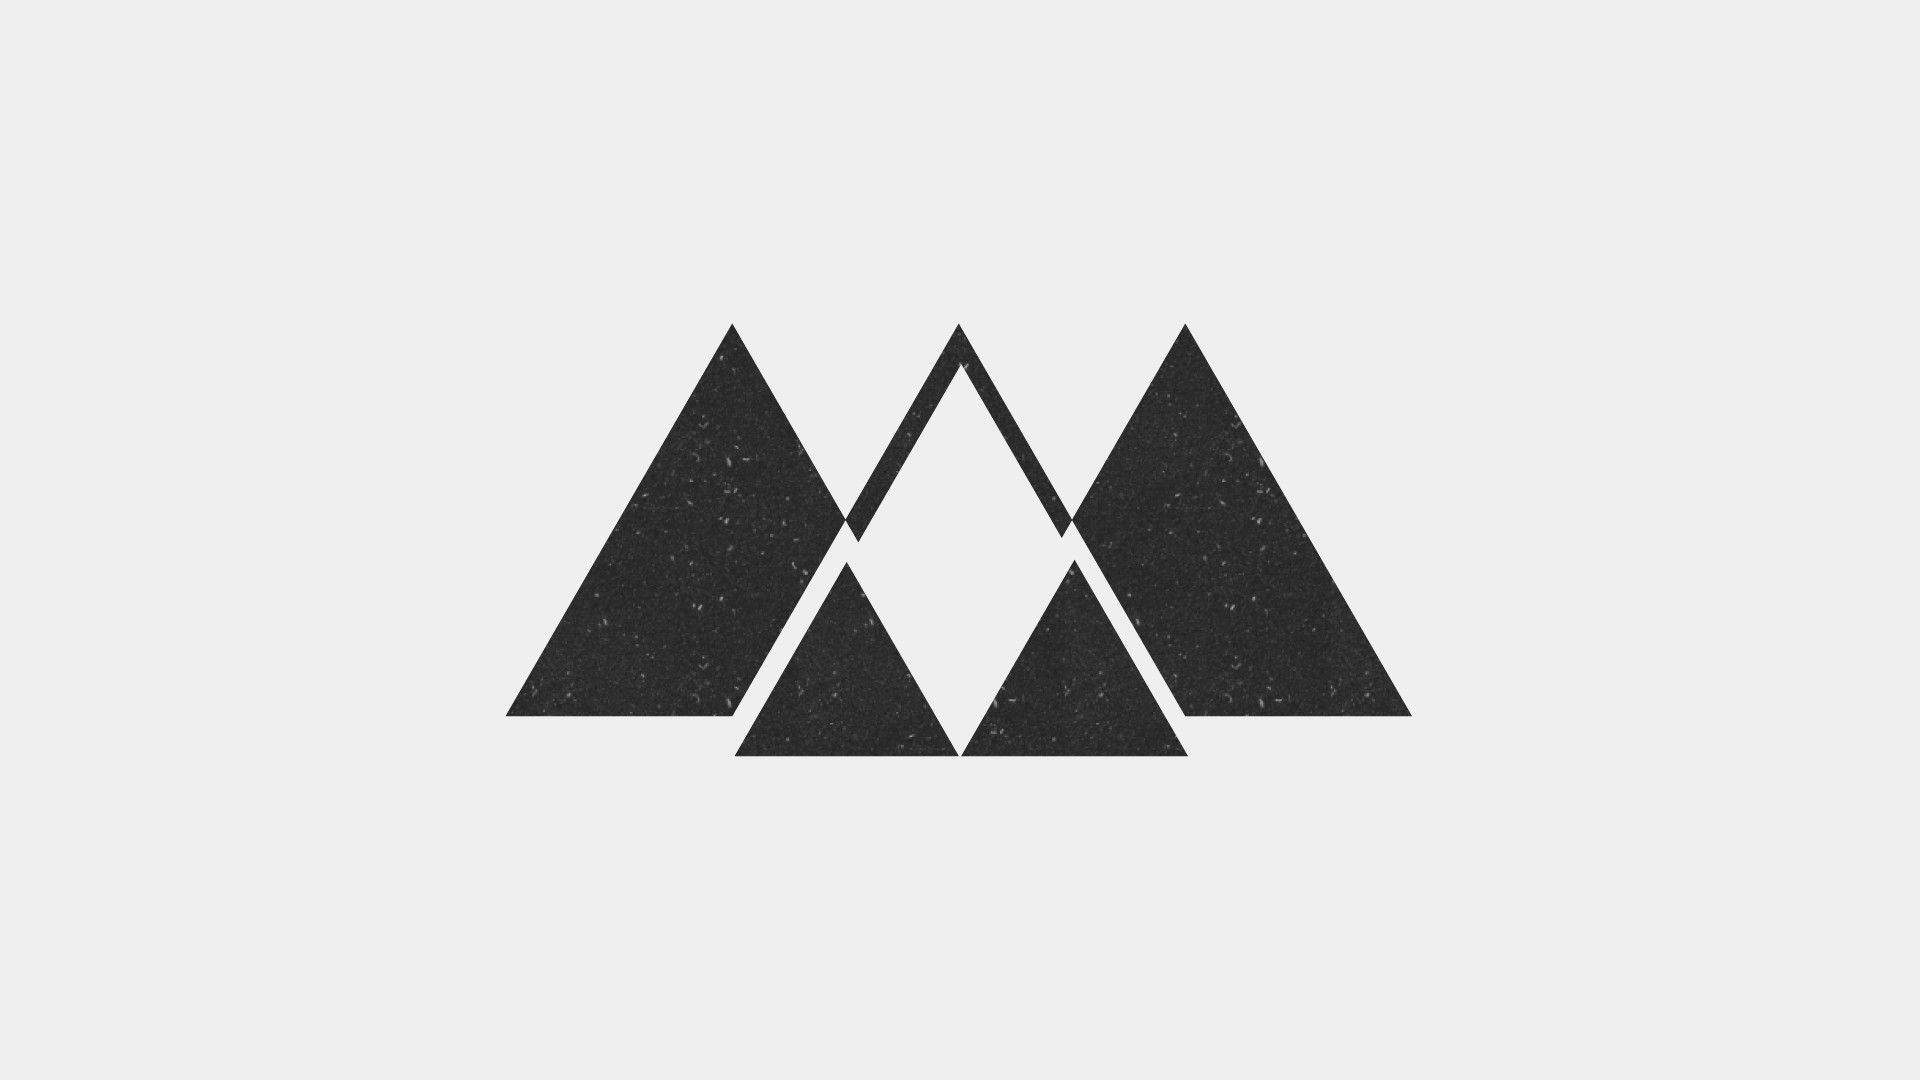 Minimalist Triangle Wallpapers Top Free Minimalist Triangle Backgrounds Wallpaperaccess